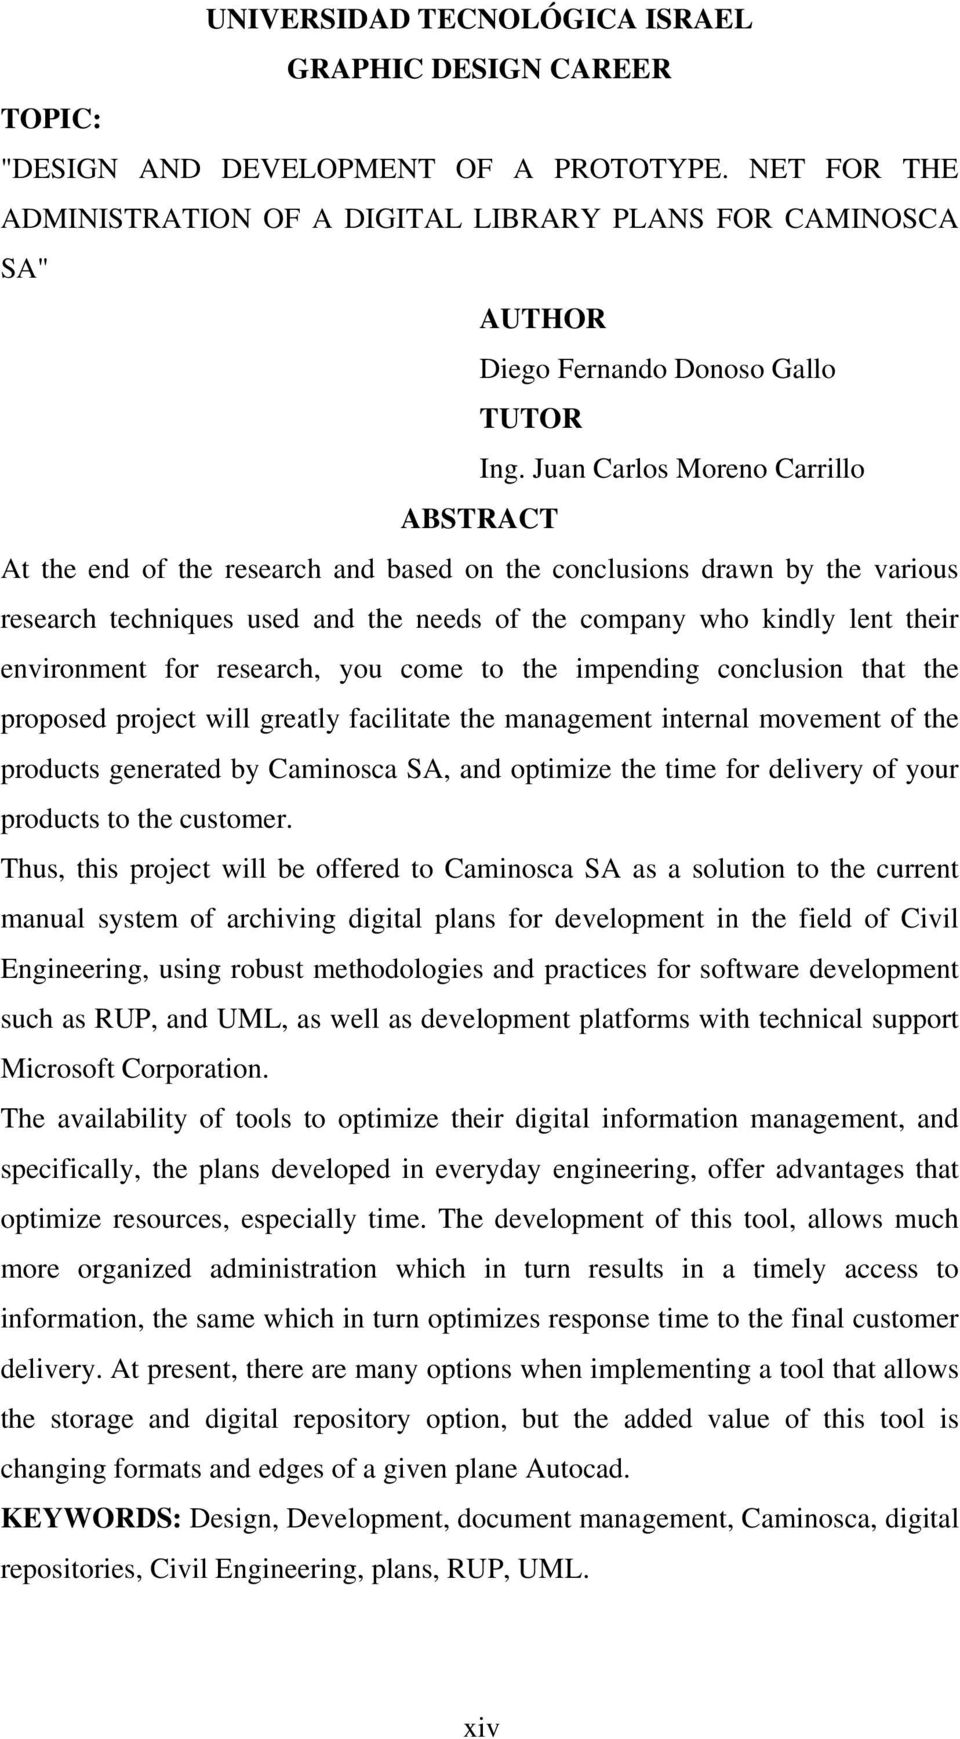 Juan Carlos Moreno Carrillo ABSTRACT At the end of the research and based on the conclusions drawn by the various research techniques used and the needs of the company who kindly lent their